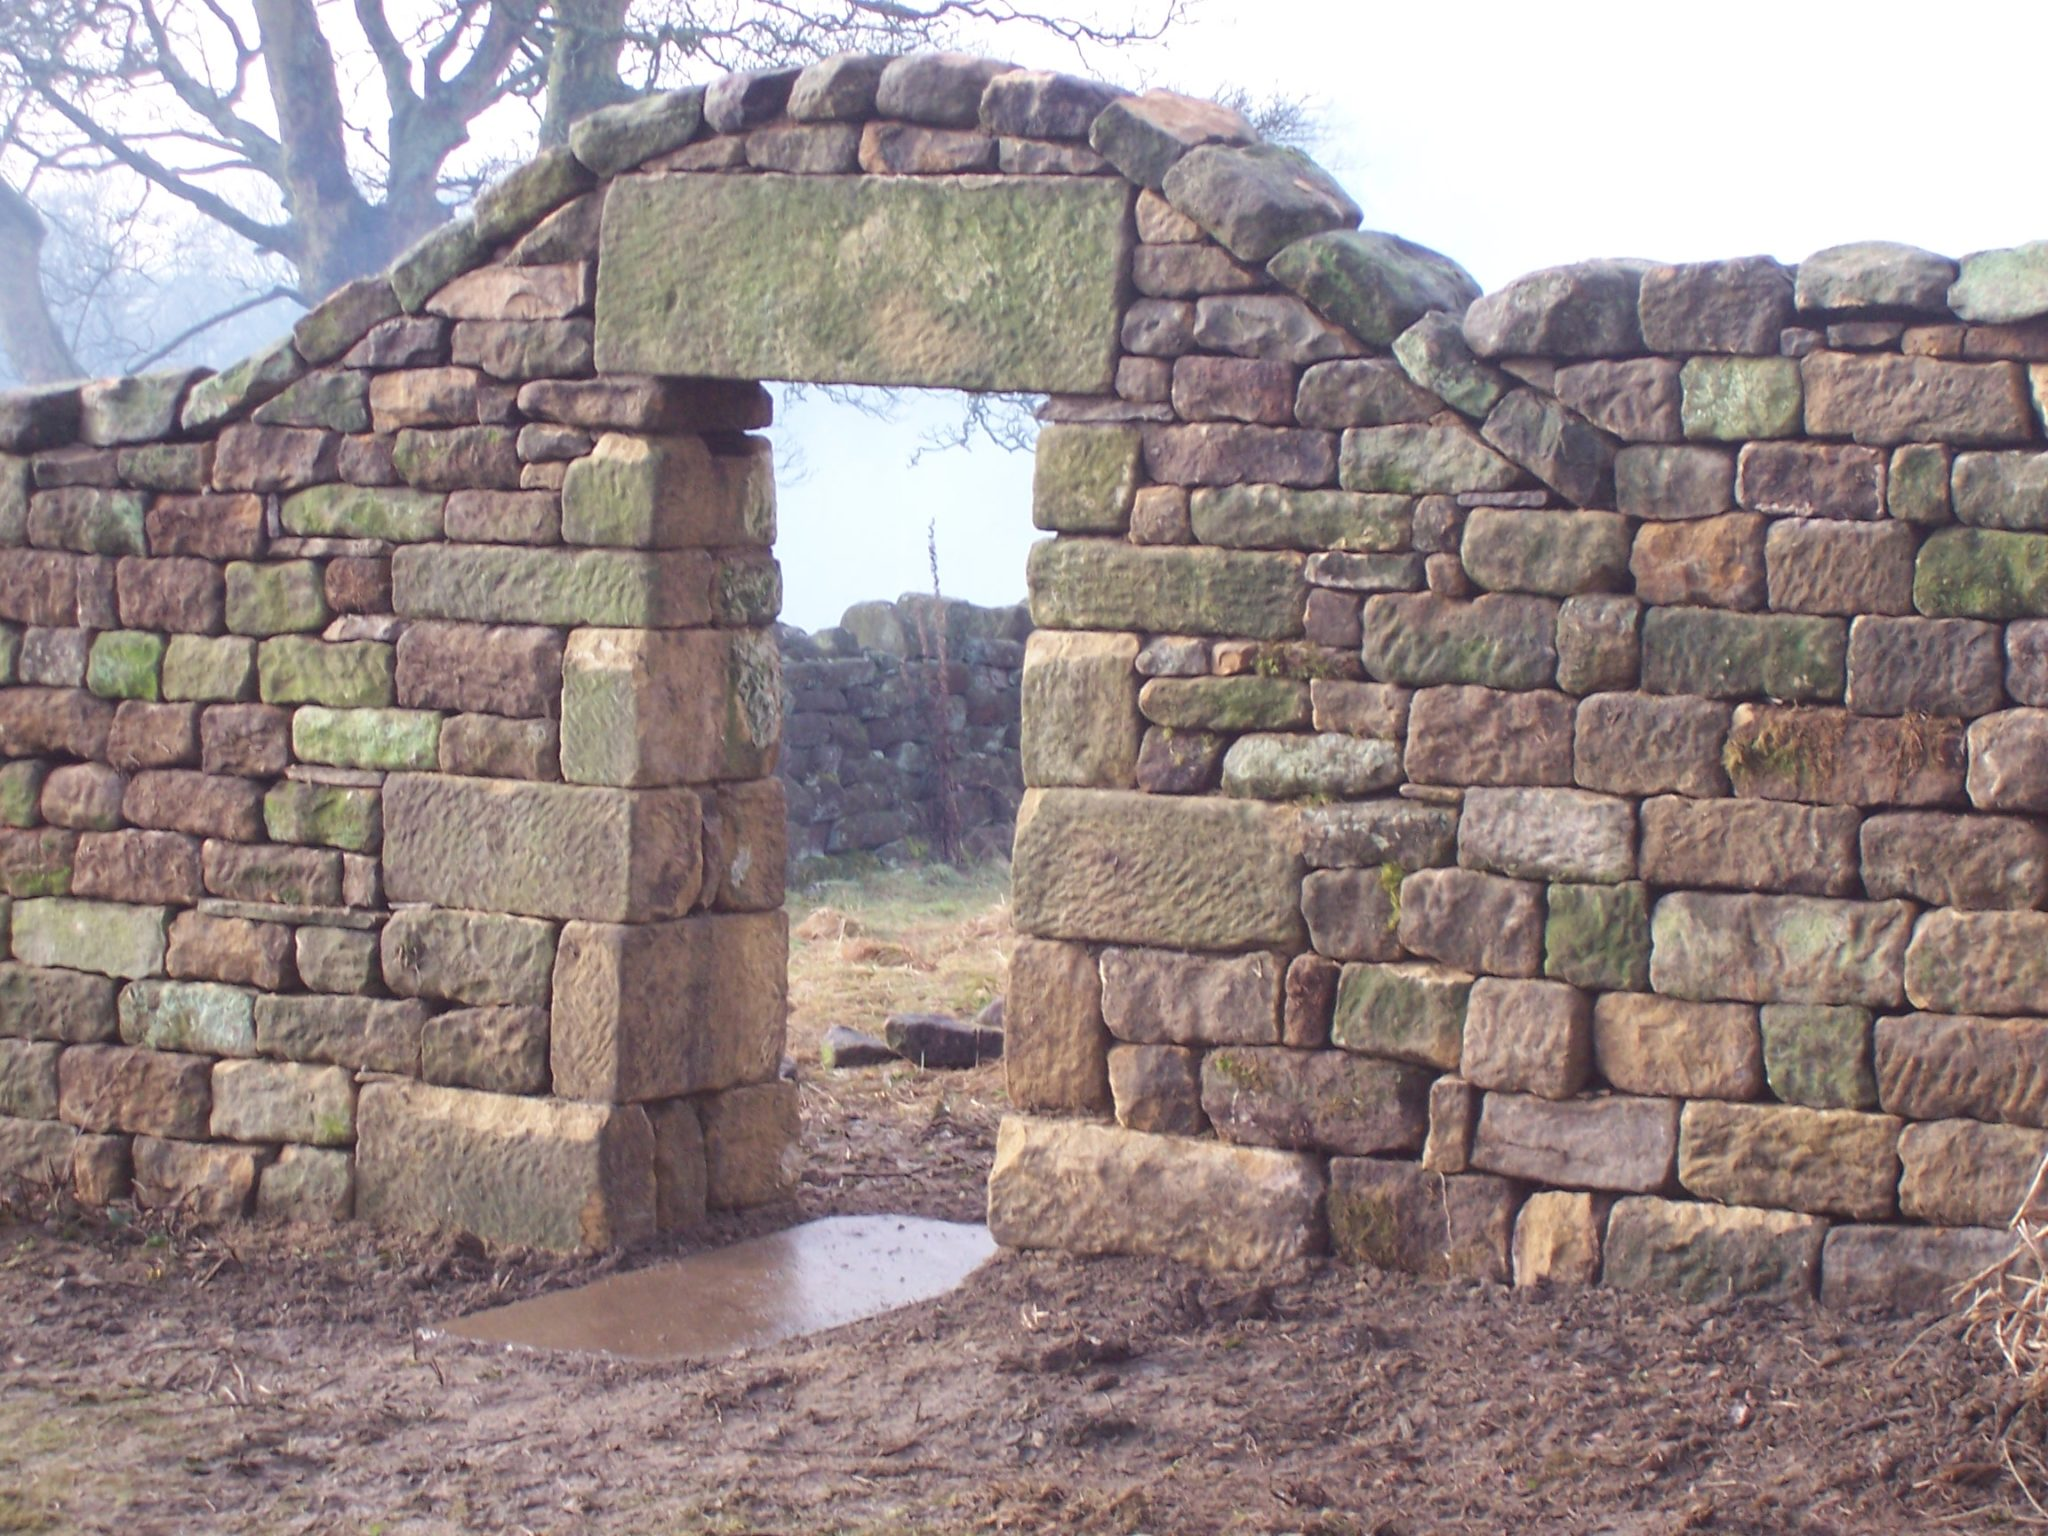 arch-doorway-with-a-lintel-support-2